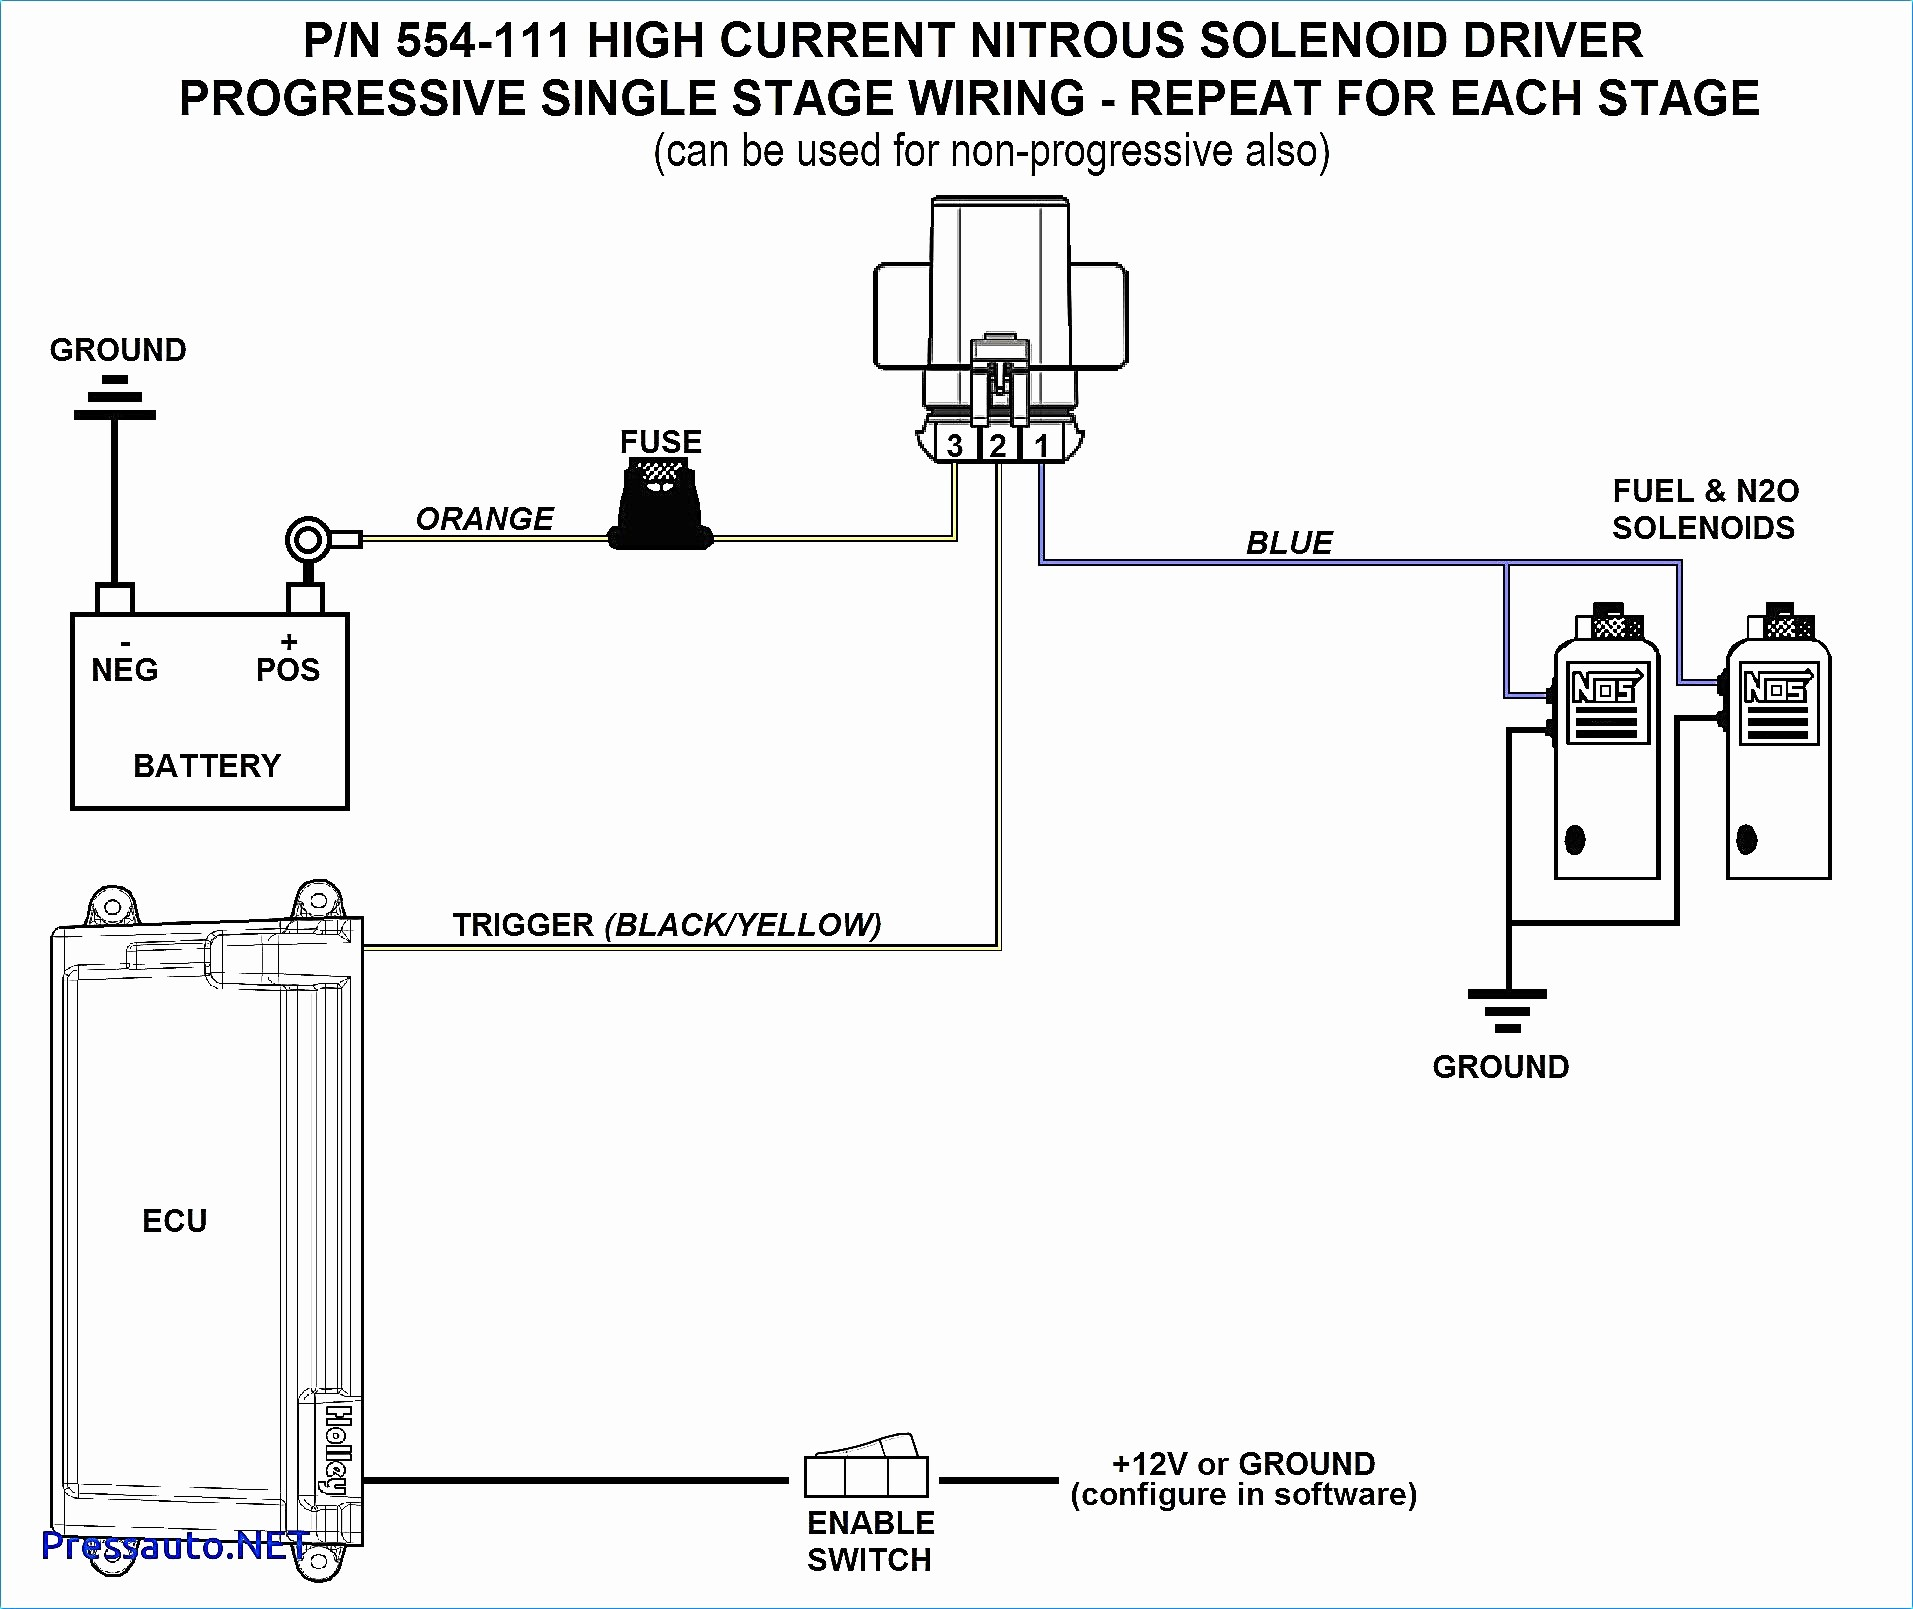 Electric Fuel Pump Relay Wiring Diagram Electric Fuel Pump Relay Wiring Diagram Sample Of Electric Fuel Pump Relay Wiring Diagram